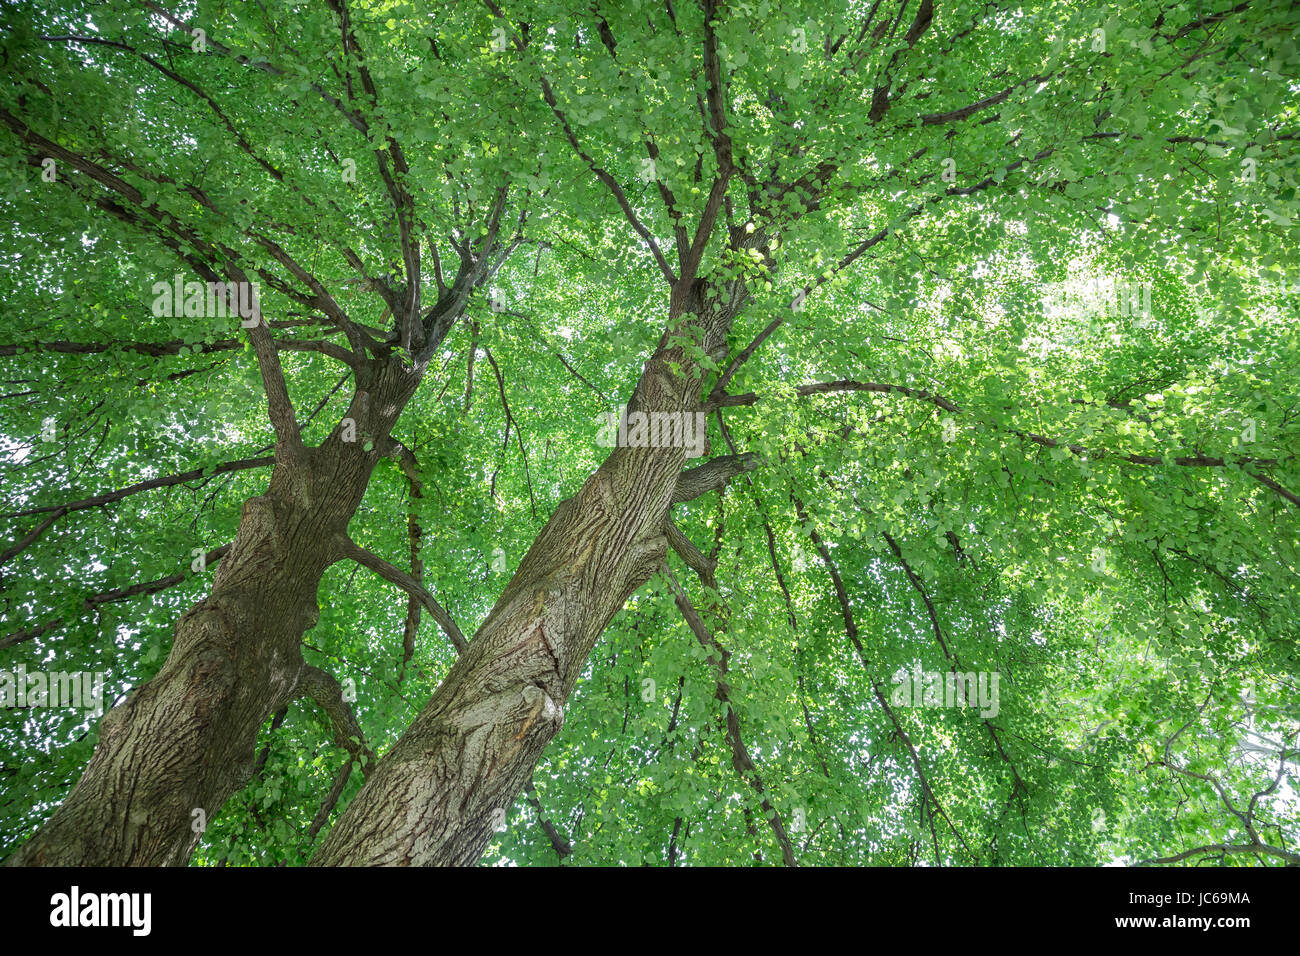 Looking up at avery large double leader linden tree. - Stock Image